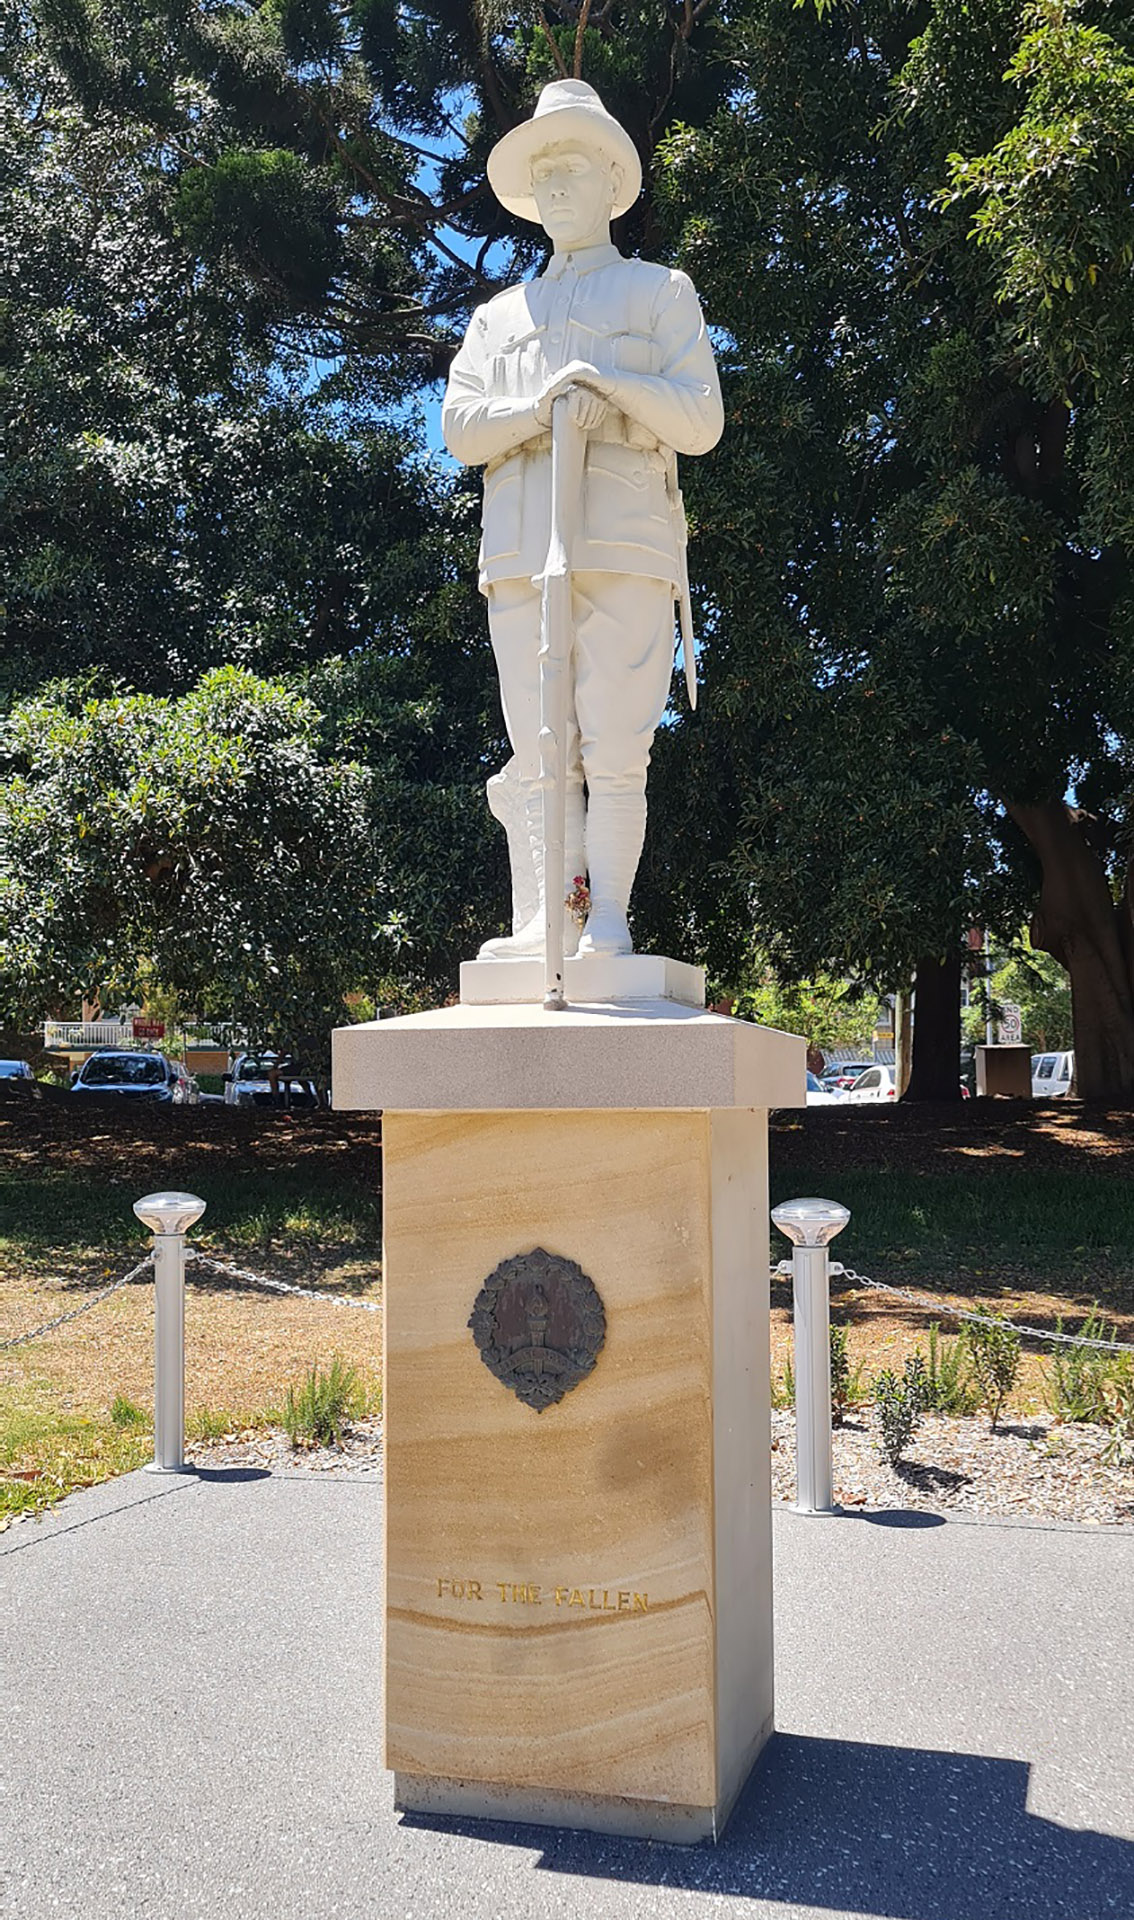 Former Wolli Creek Tram Depot War Memorial, Sans Souci. Provided by Bayside Council, 2021.